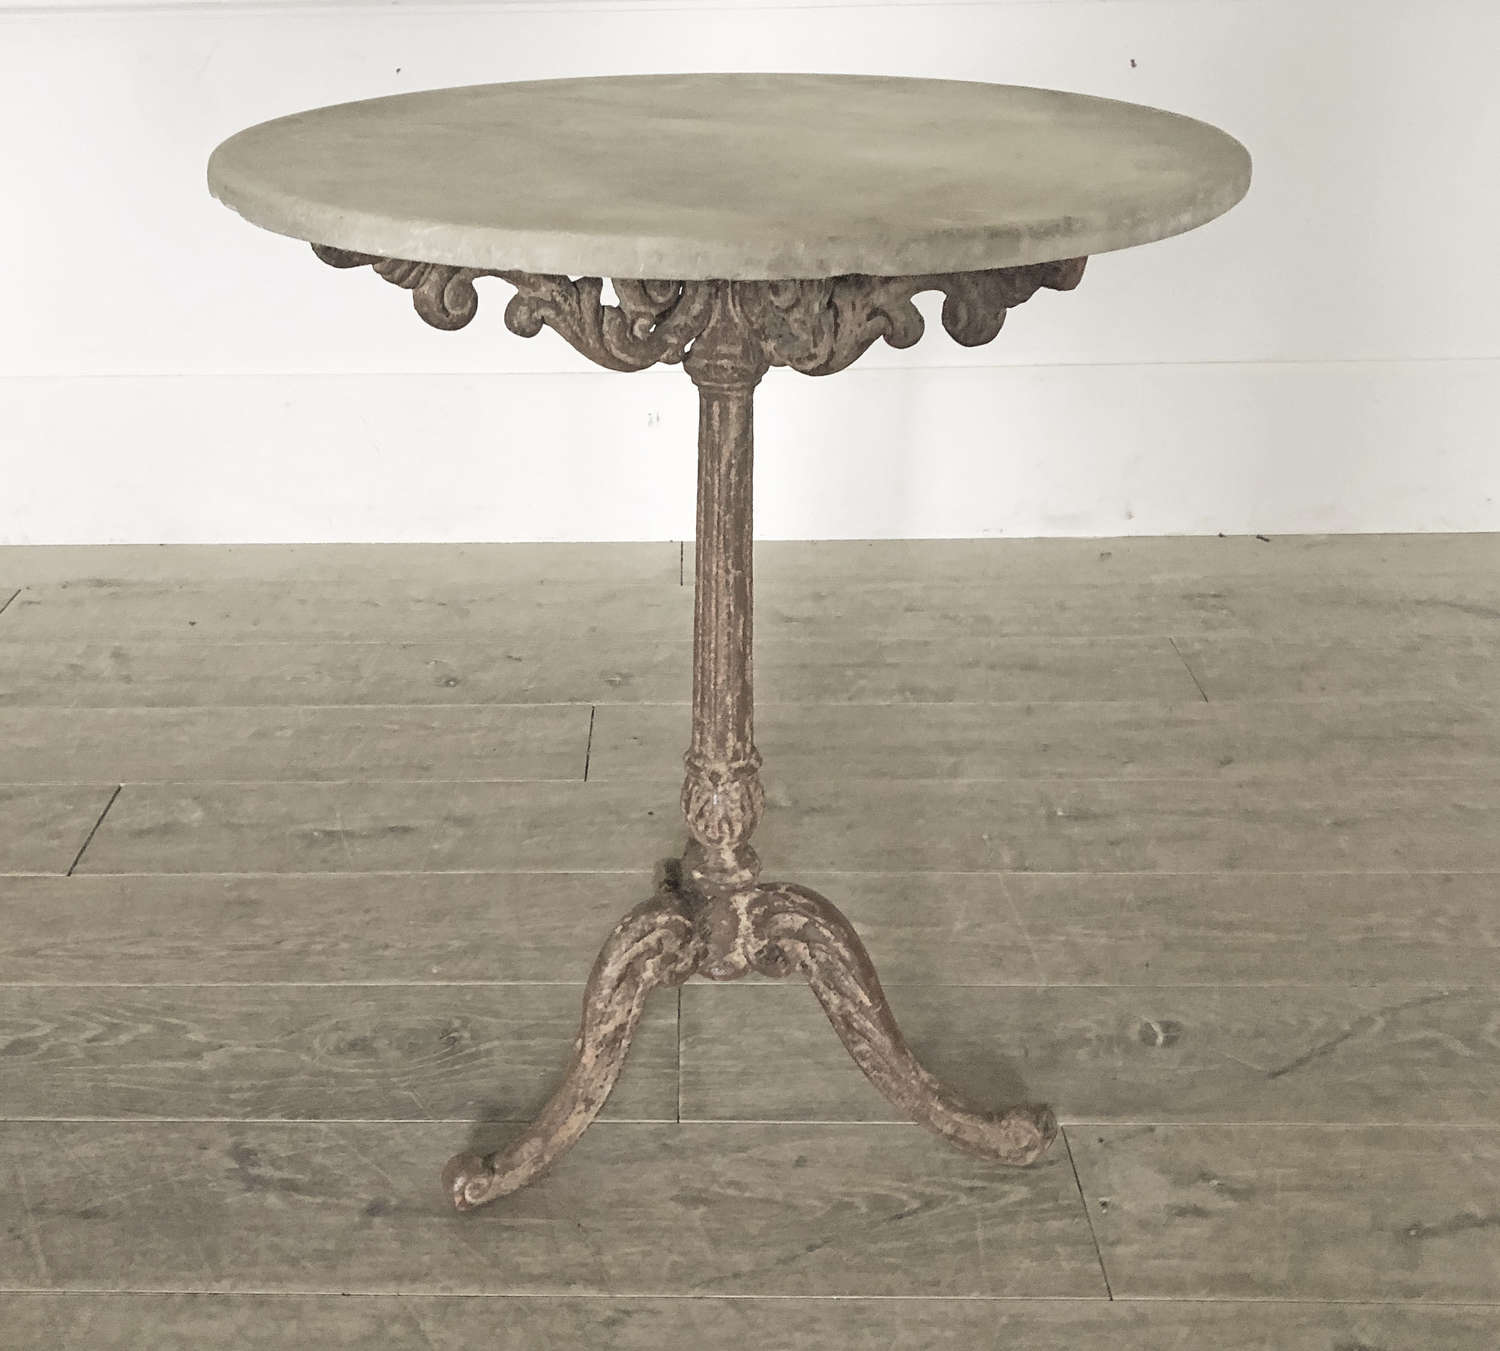 Small 19th c French Cast Iron Table with Round Marble Top - circa 1880